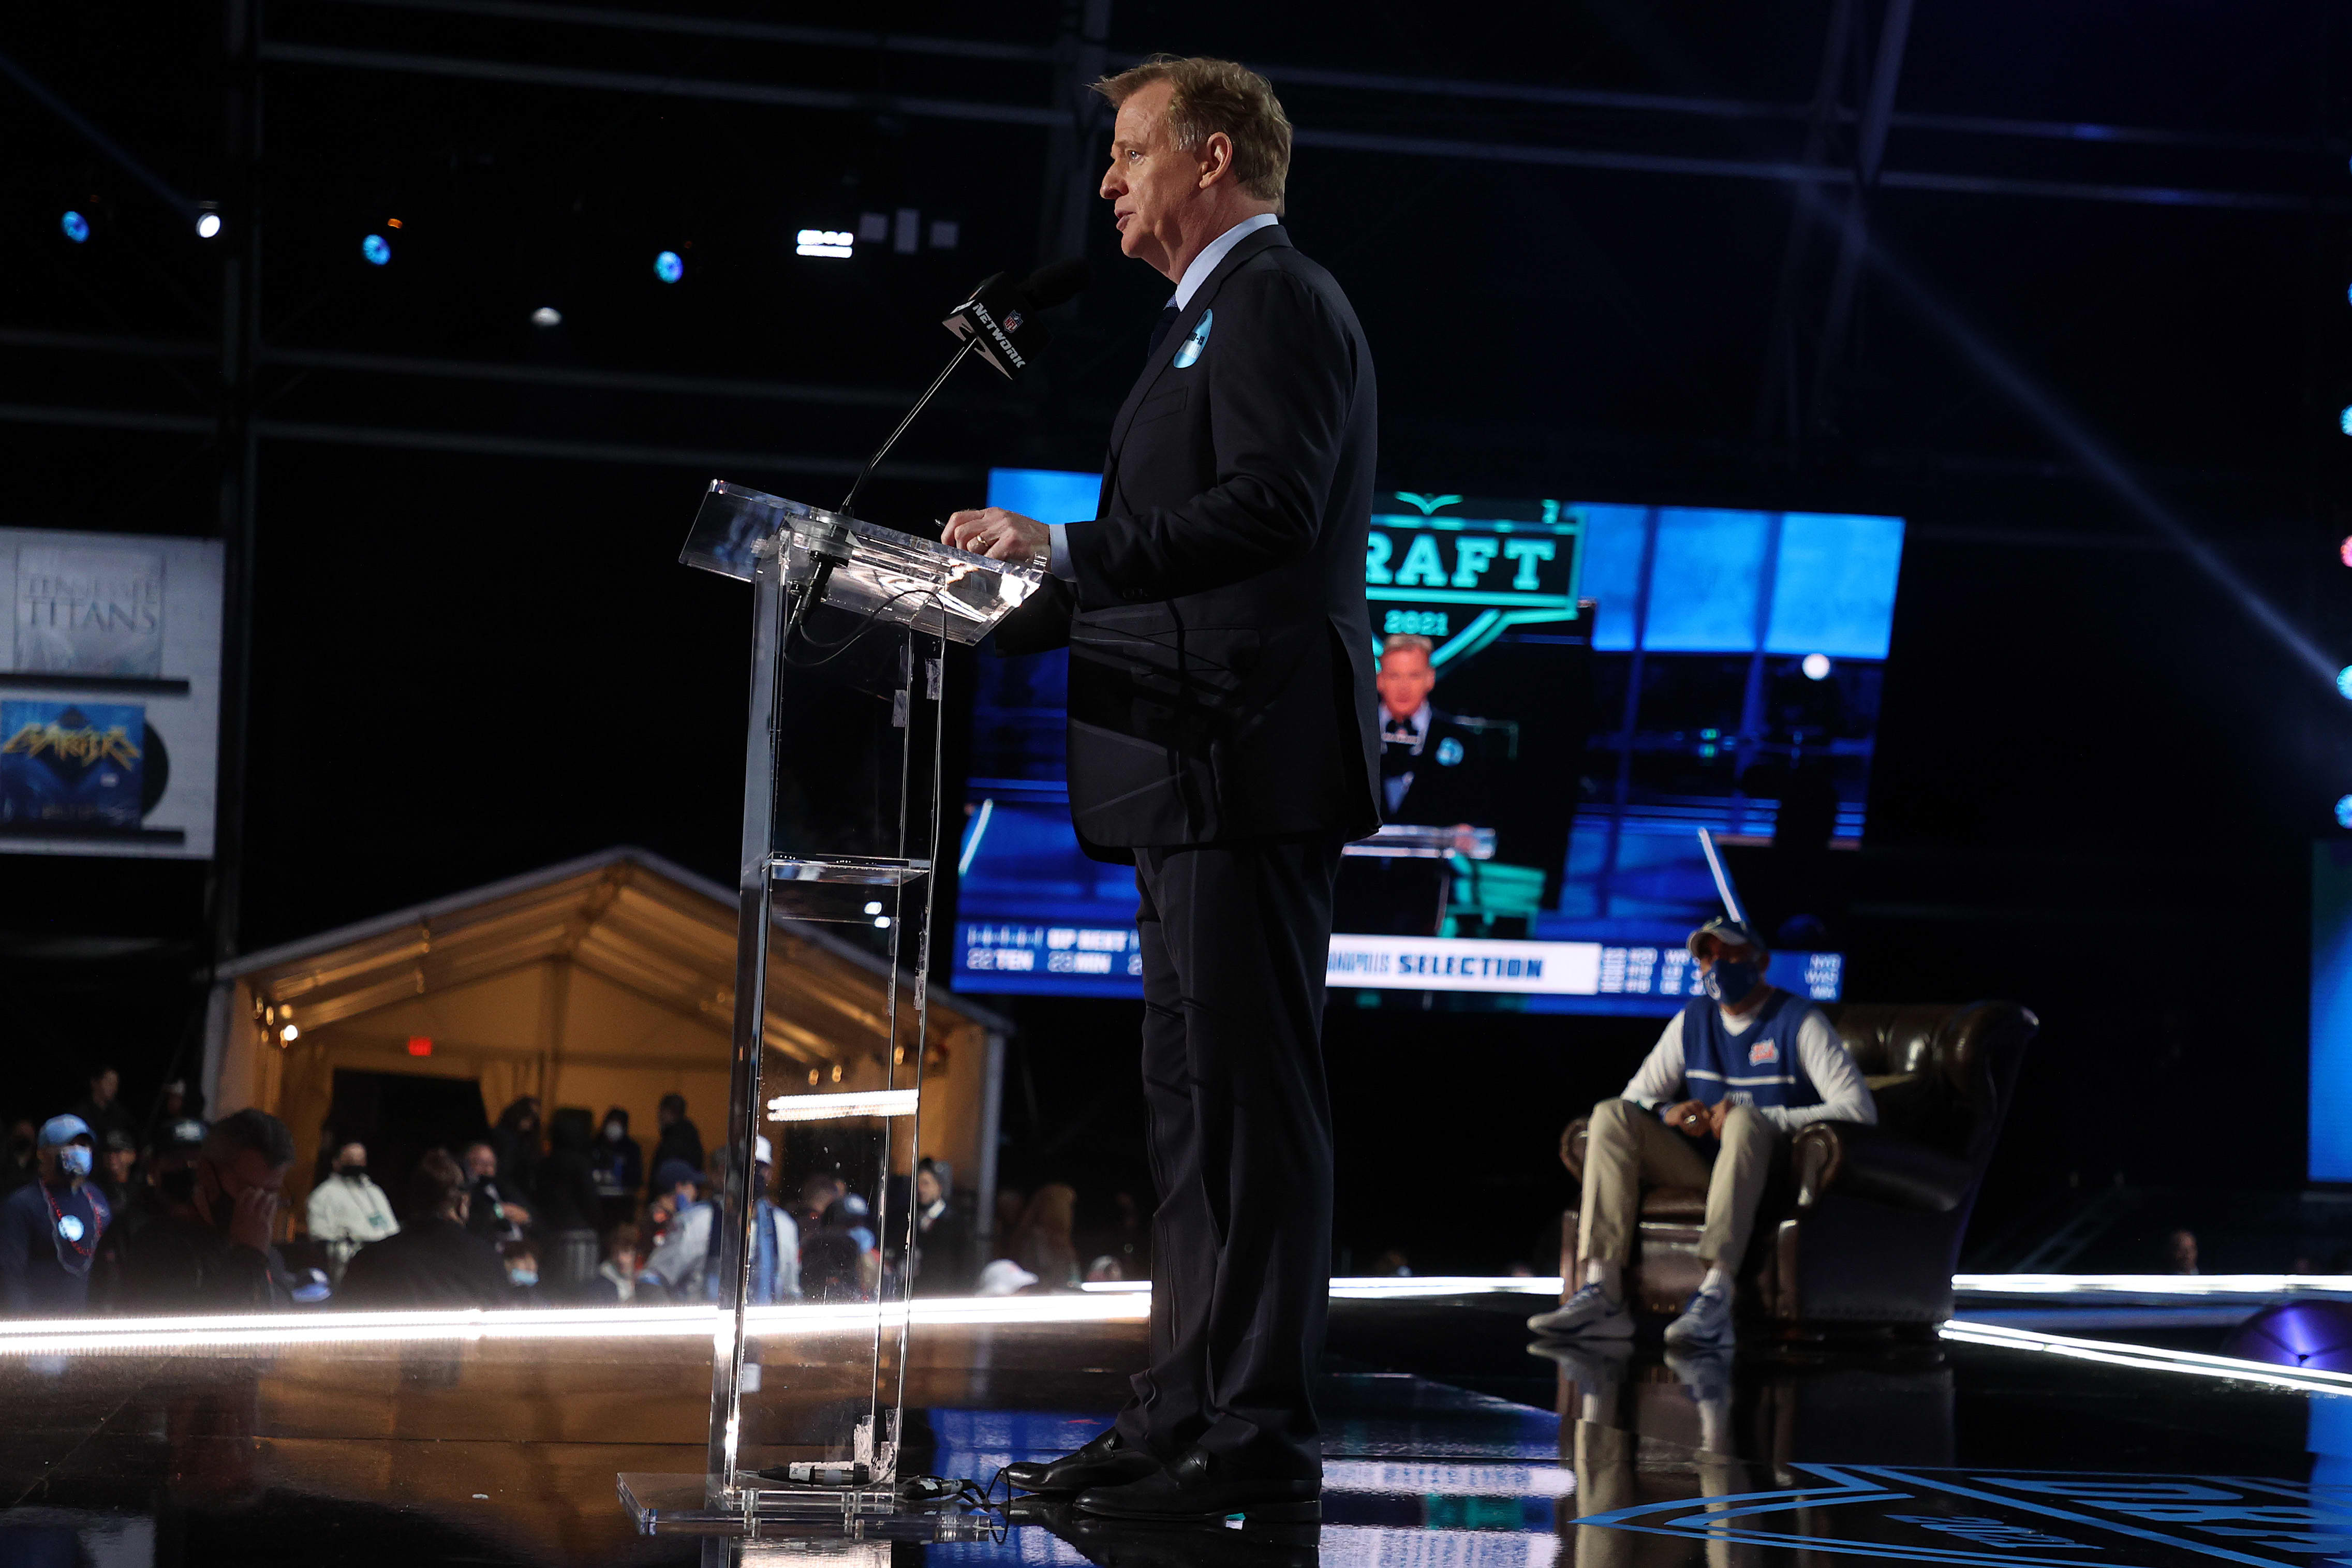 First round of the 2021 NFL Draft attracted 12.6 million viewers, second-biggest audience ever